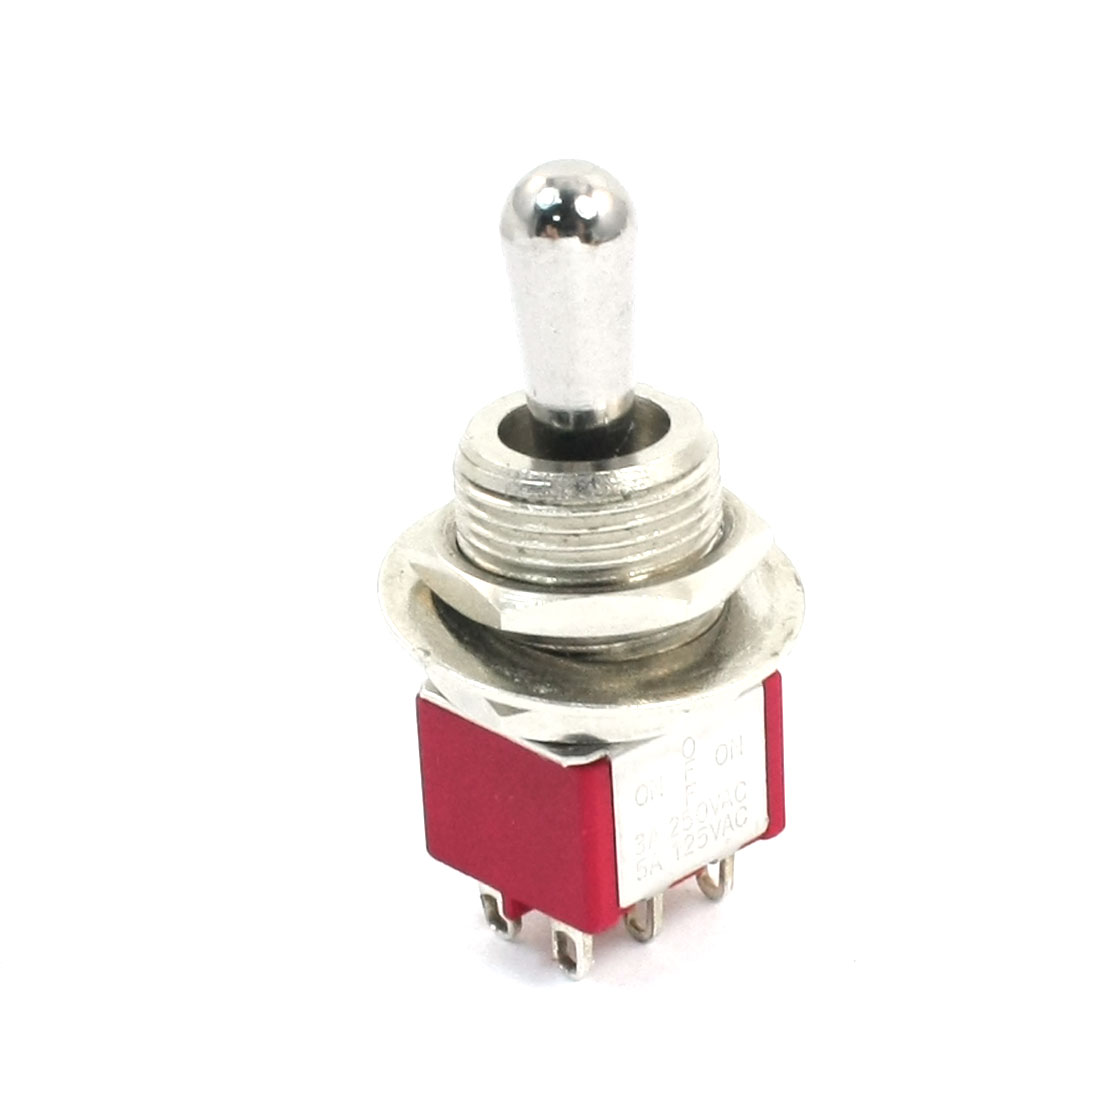 DPDT 3 Positions ON/OFF/ON Auto Motor Rocker Toggle Switch AC250V 3A 125V 5A